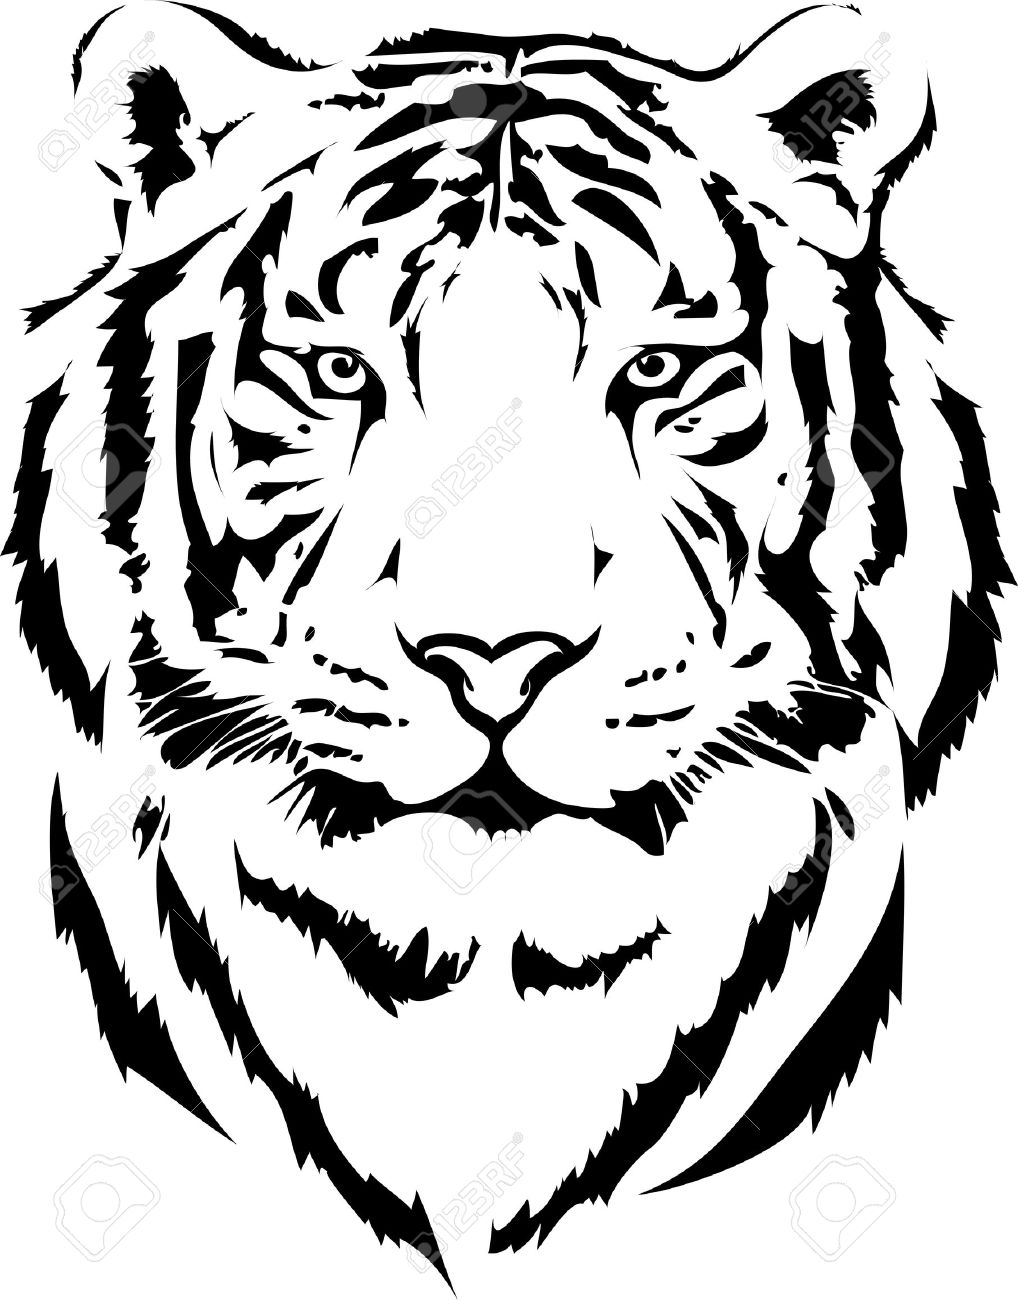 Tiger Head Black And White Clipart.